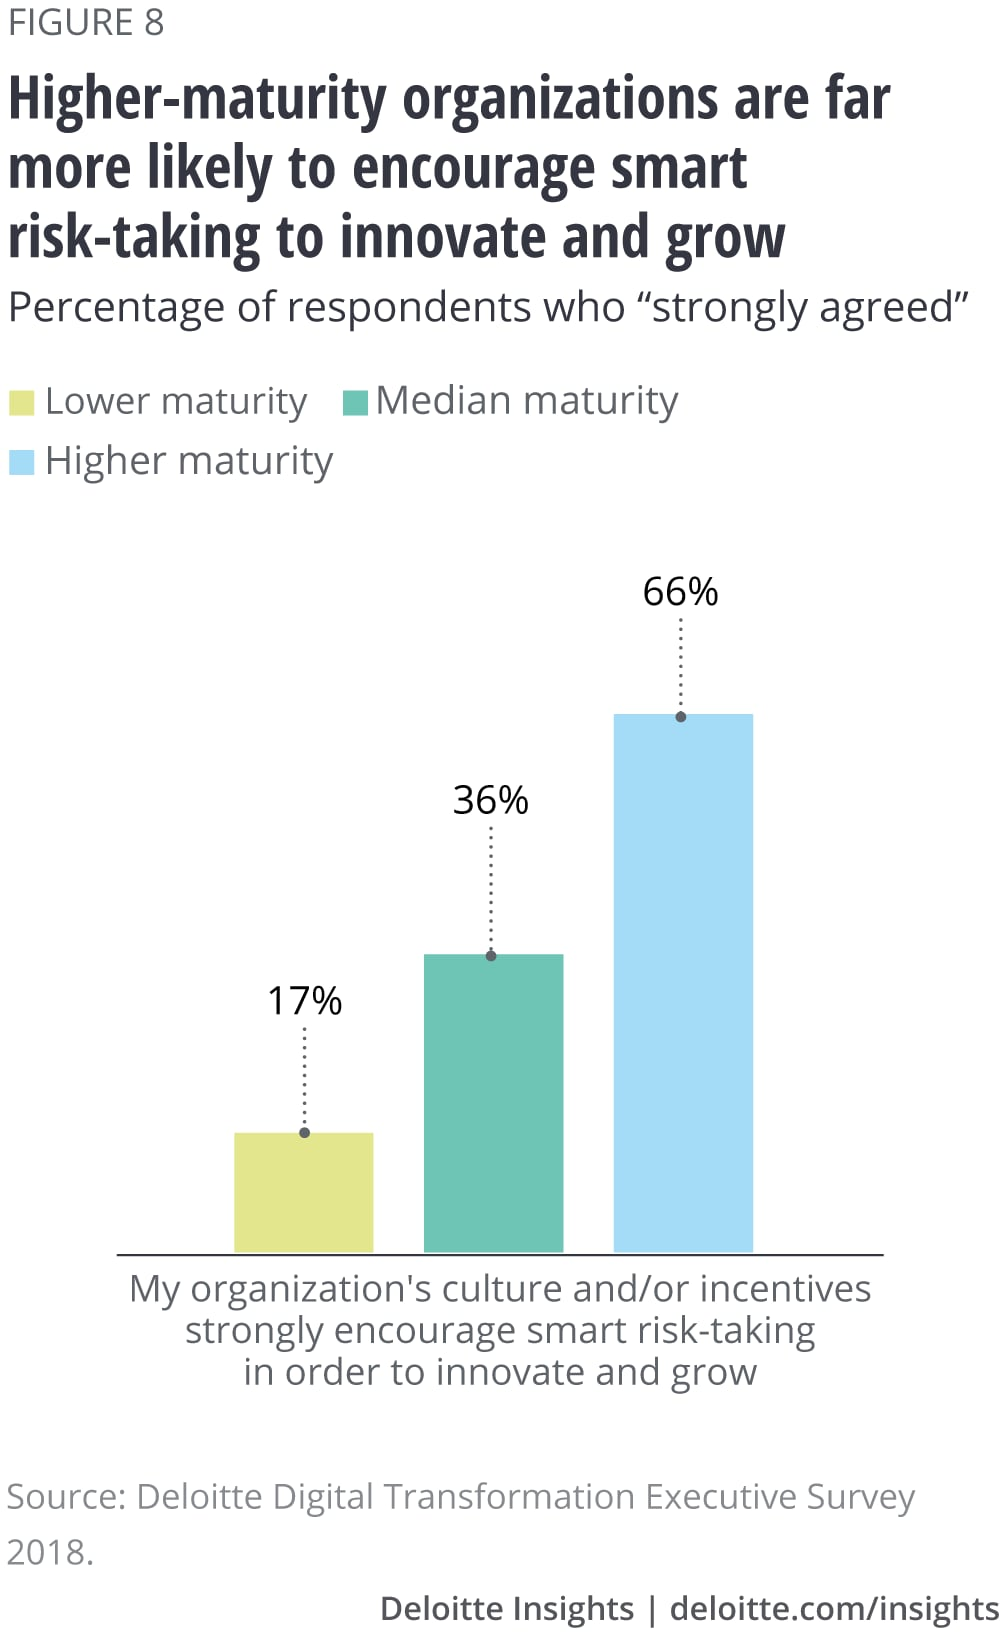 Higher-maturity organizations are far more likely to encourage smart risk-taking to innovate and grow